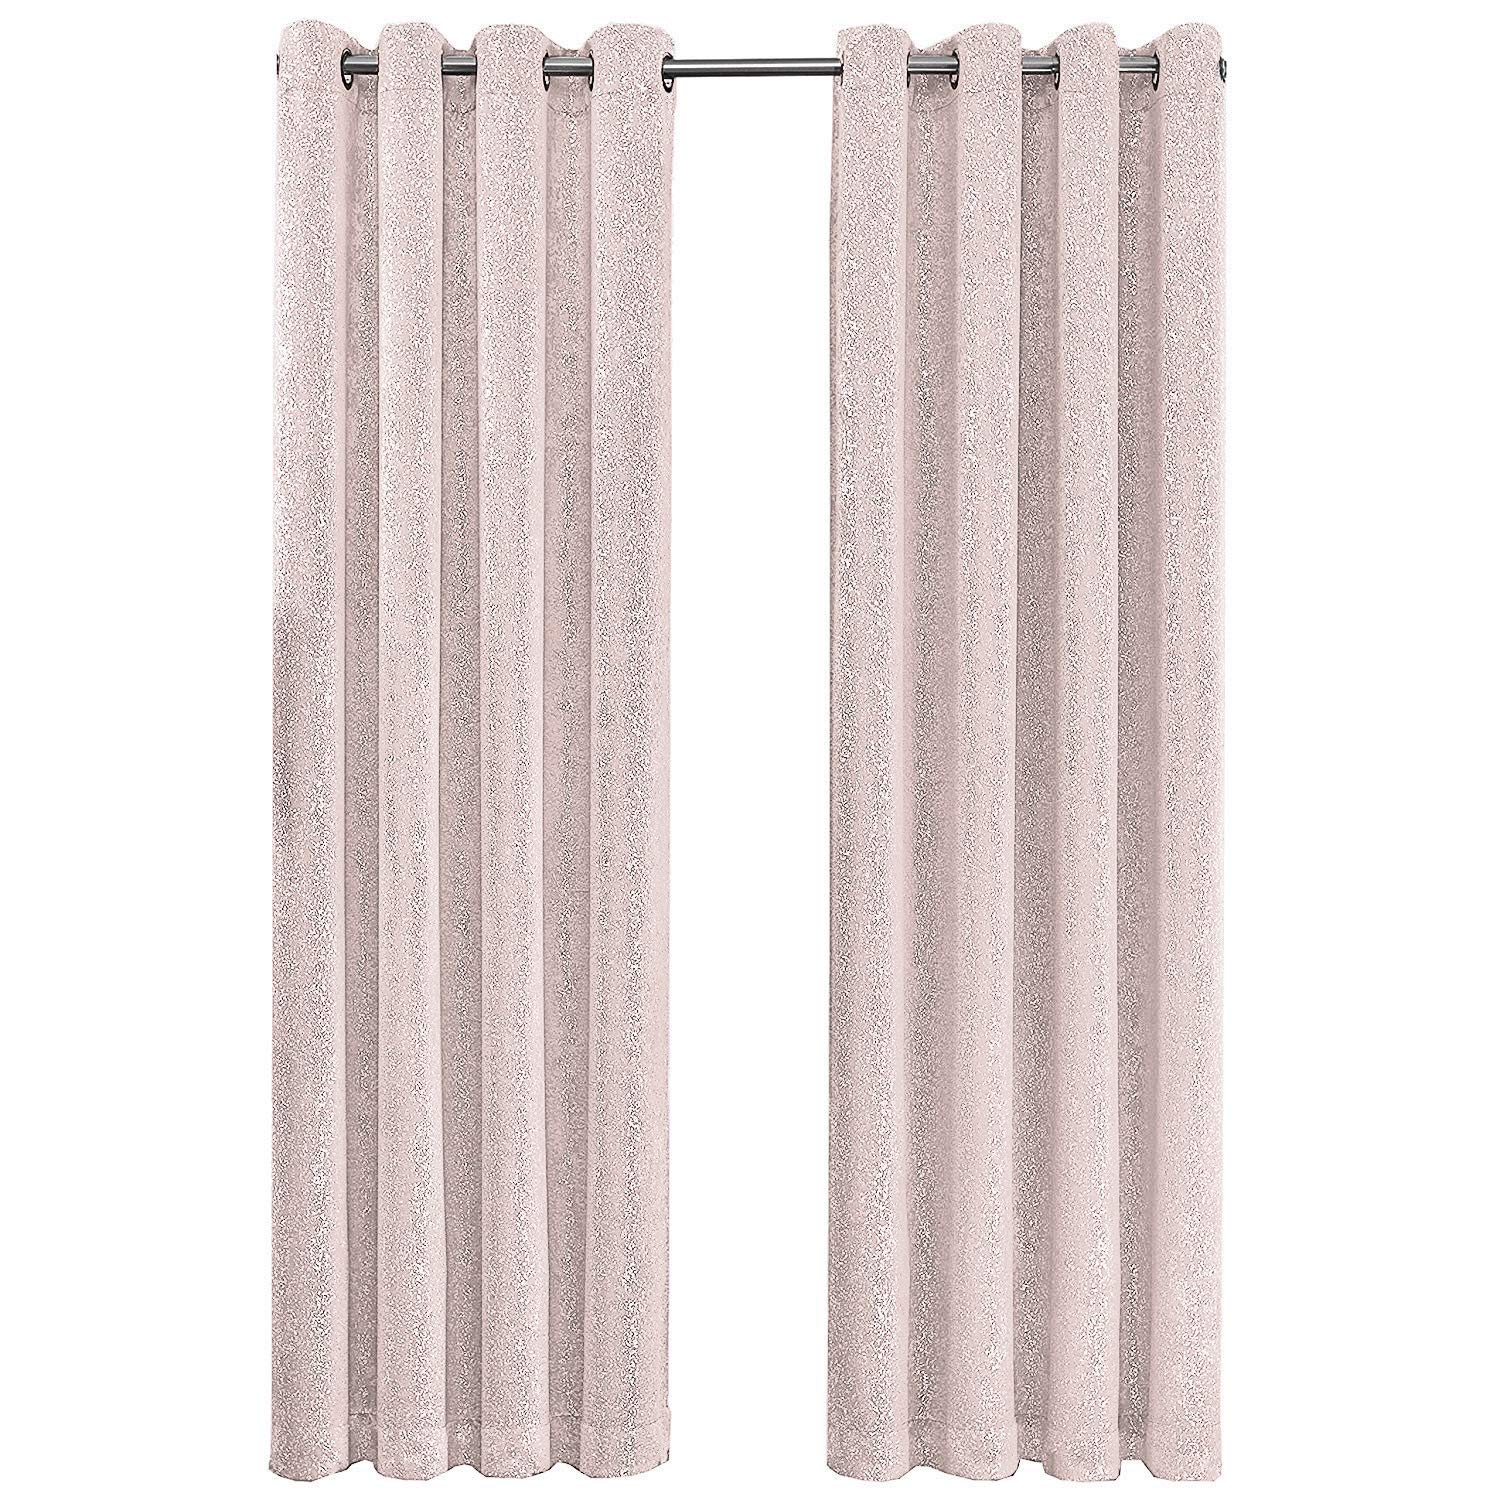 Sparkly Pink Blackout Curtains